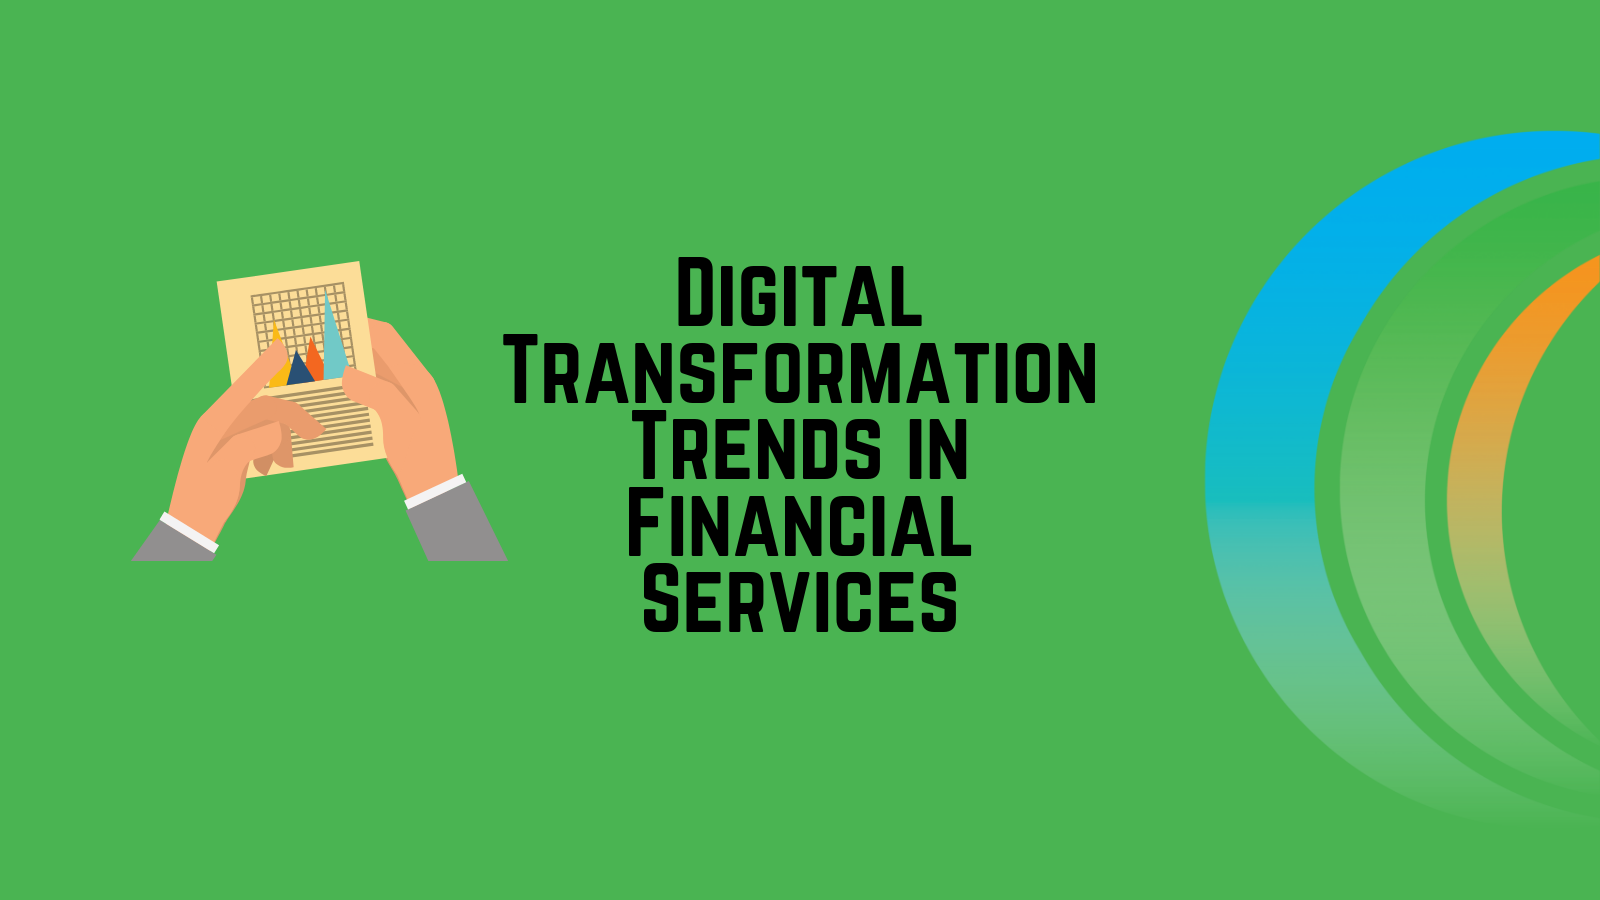 Top 7 Digital Transformation Trends In Financial Services For 2020 Thumbnail